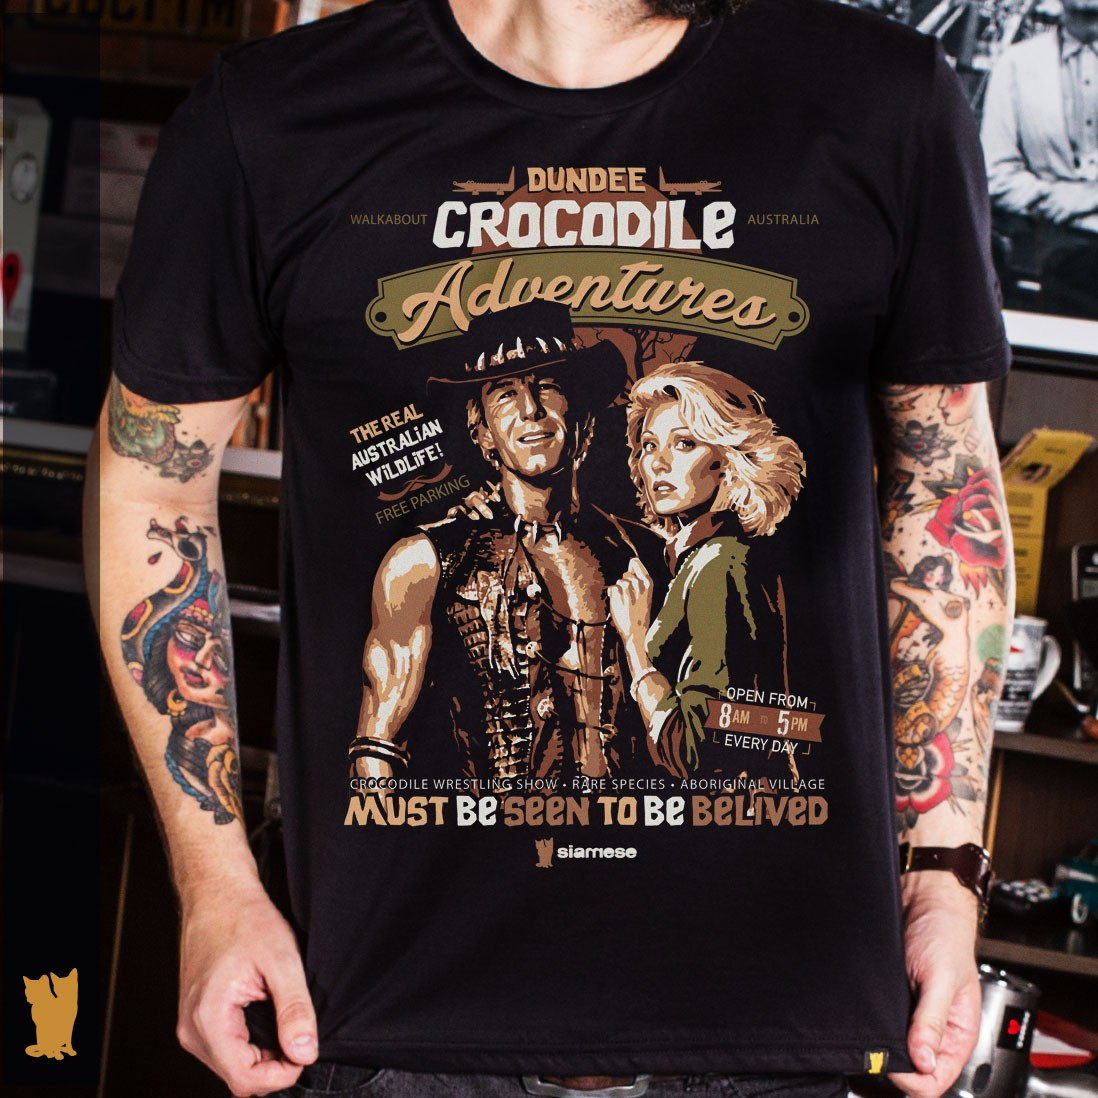 CAMISETA CROCODILO DUNDEE ADVENTURES - PRETA